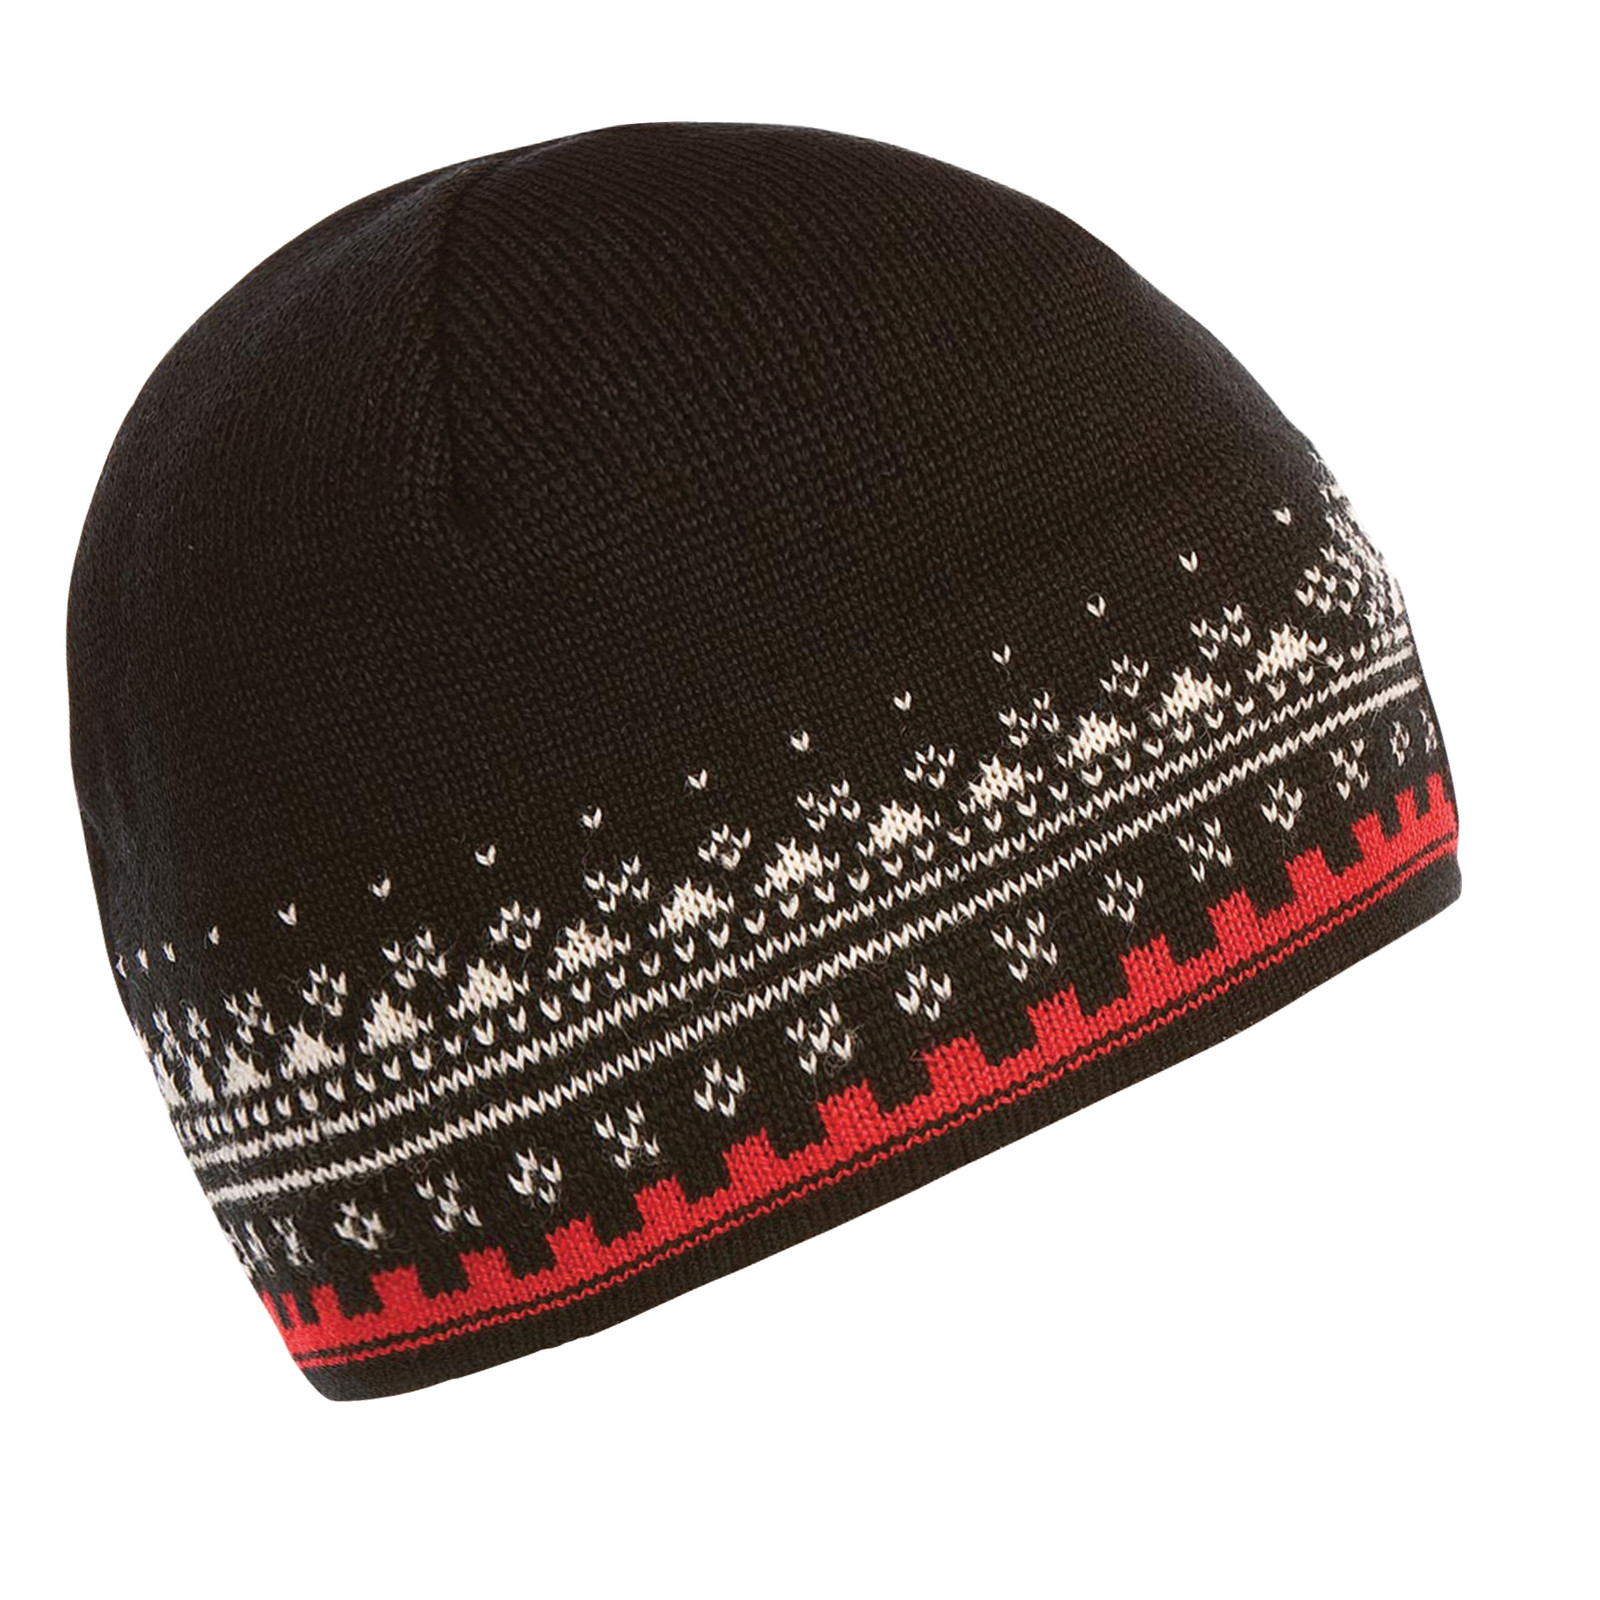 Dale of Norway 125th Anniversary Hat - Black/Raspberry/Off White, 47931-F